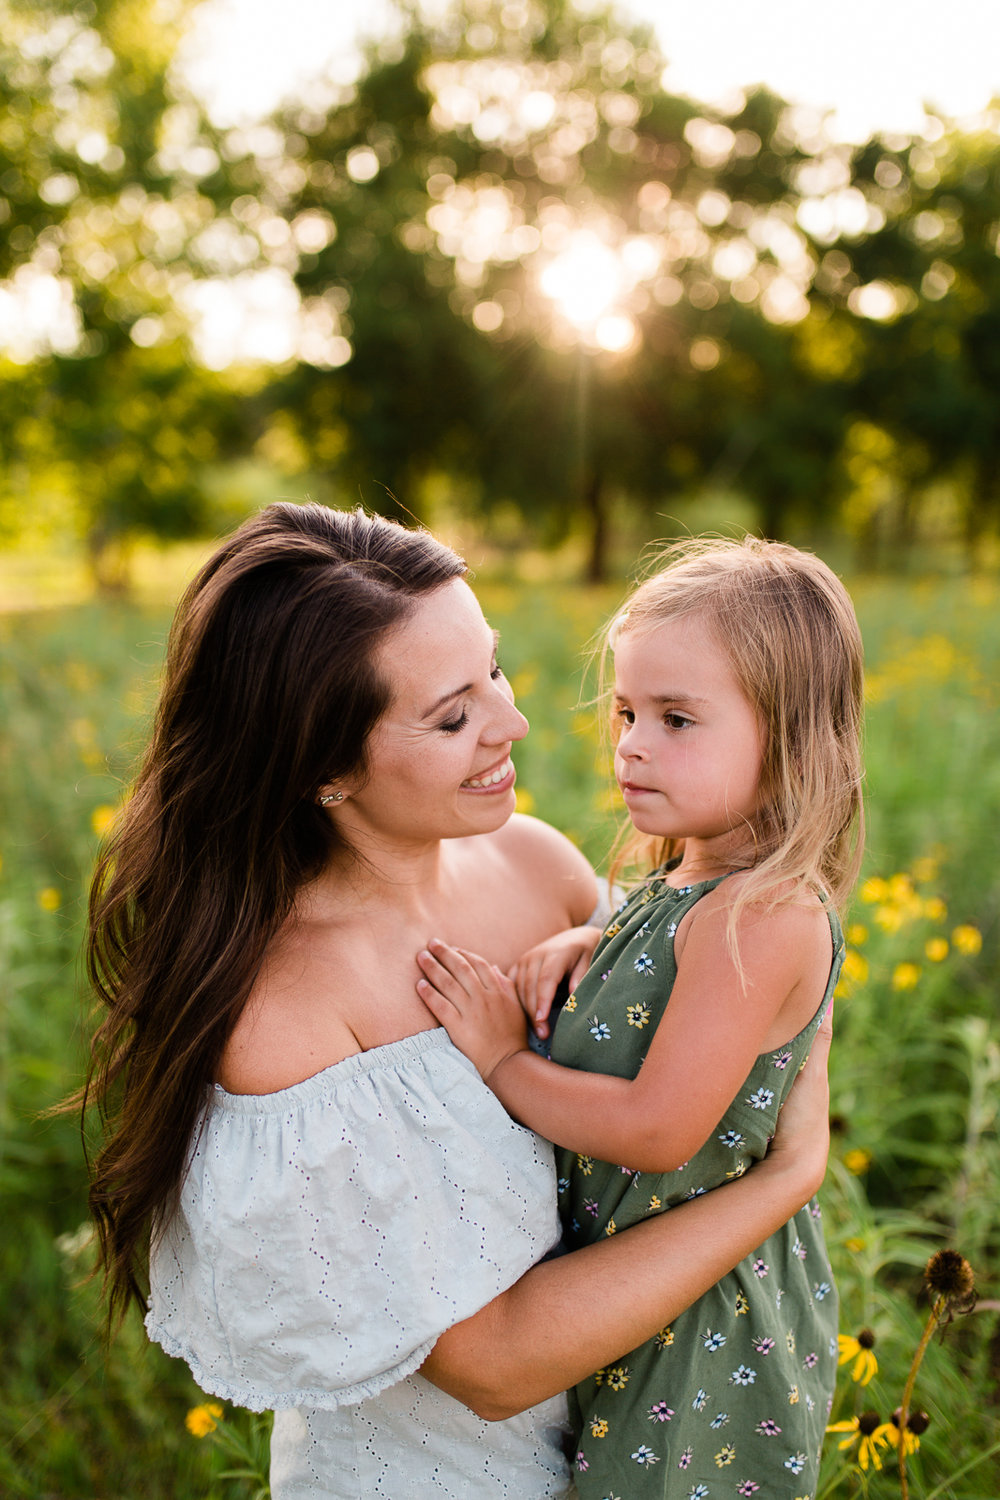 Golden hour potrait of mother and daughter, mommy and me session at Shawnee Mission Park, Kansas City family photographer